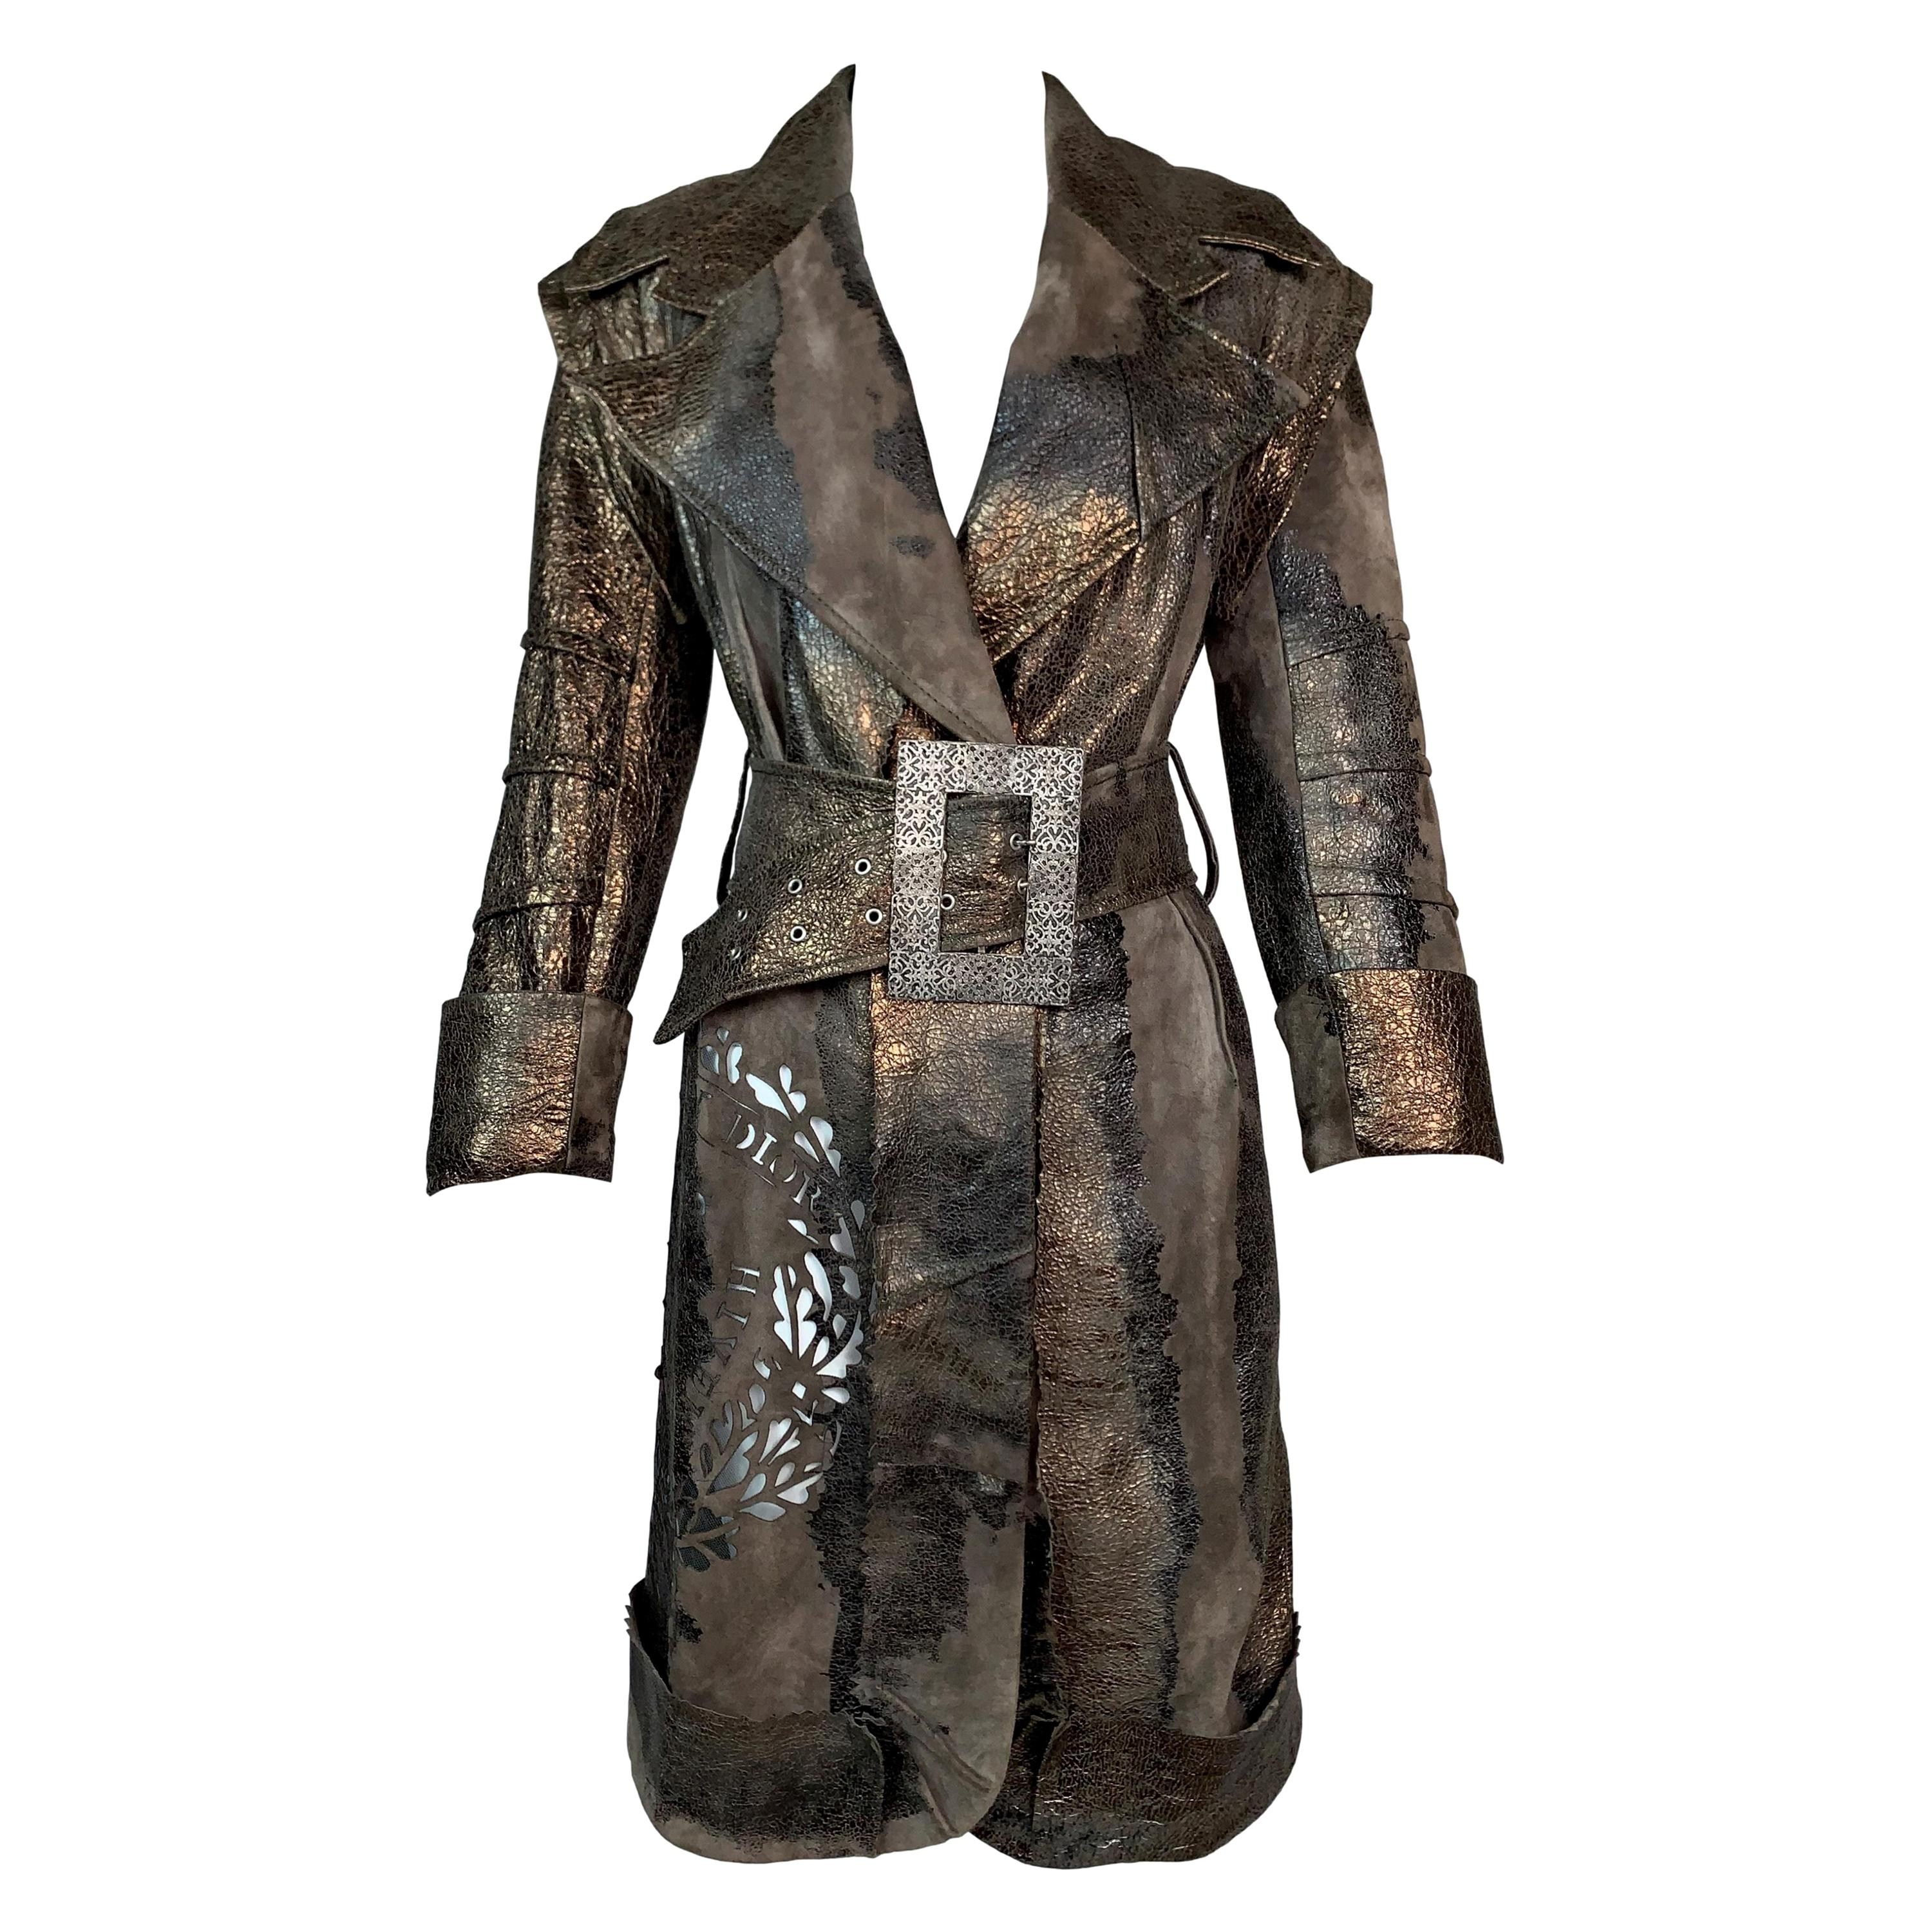 F/W 2006 Christian Dior John Galliano Bronze Leather Pirate Cut-Out Jacket